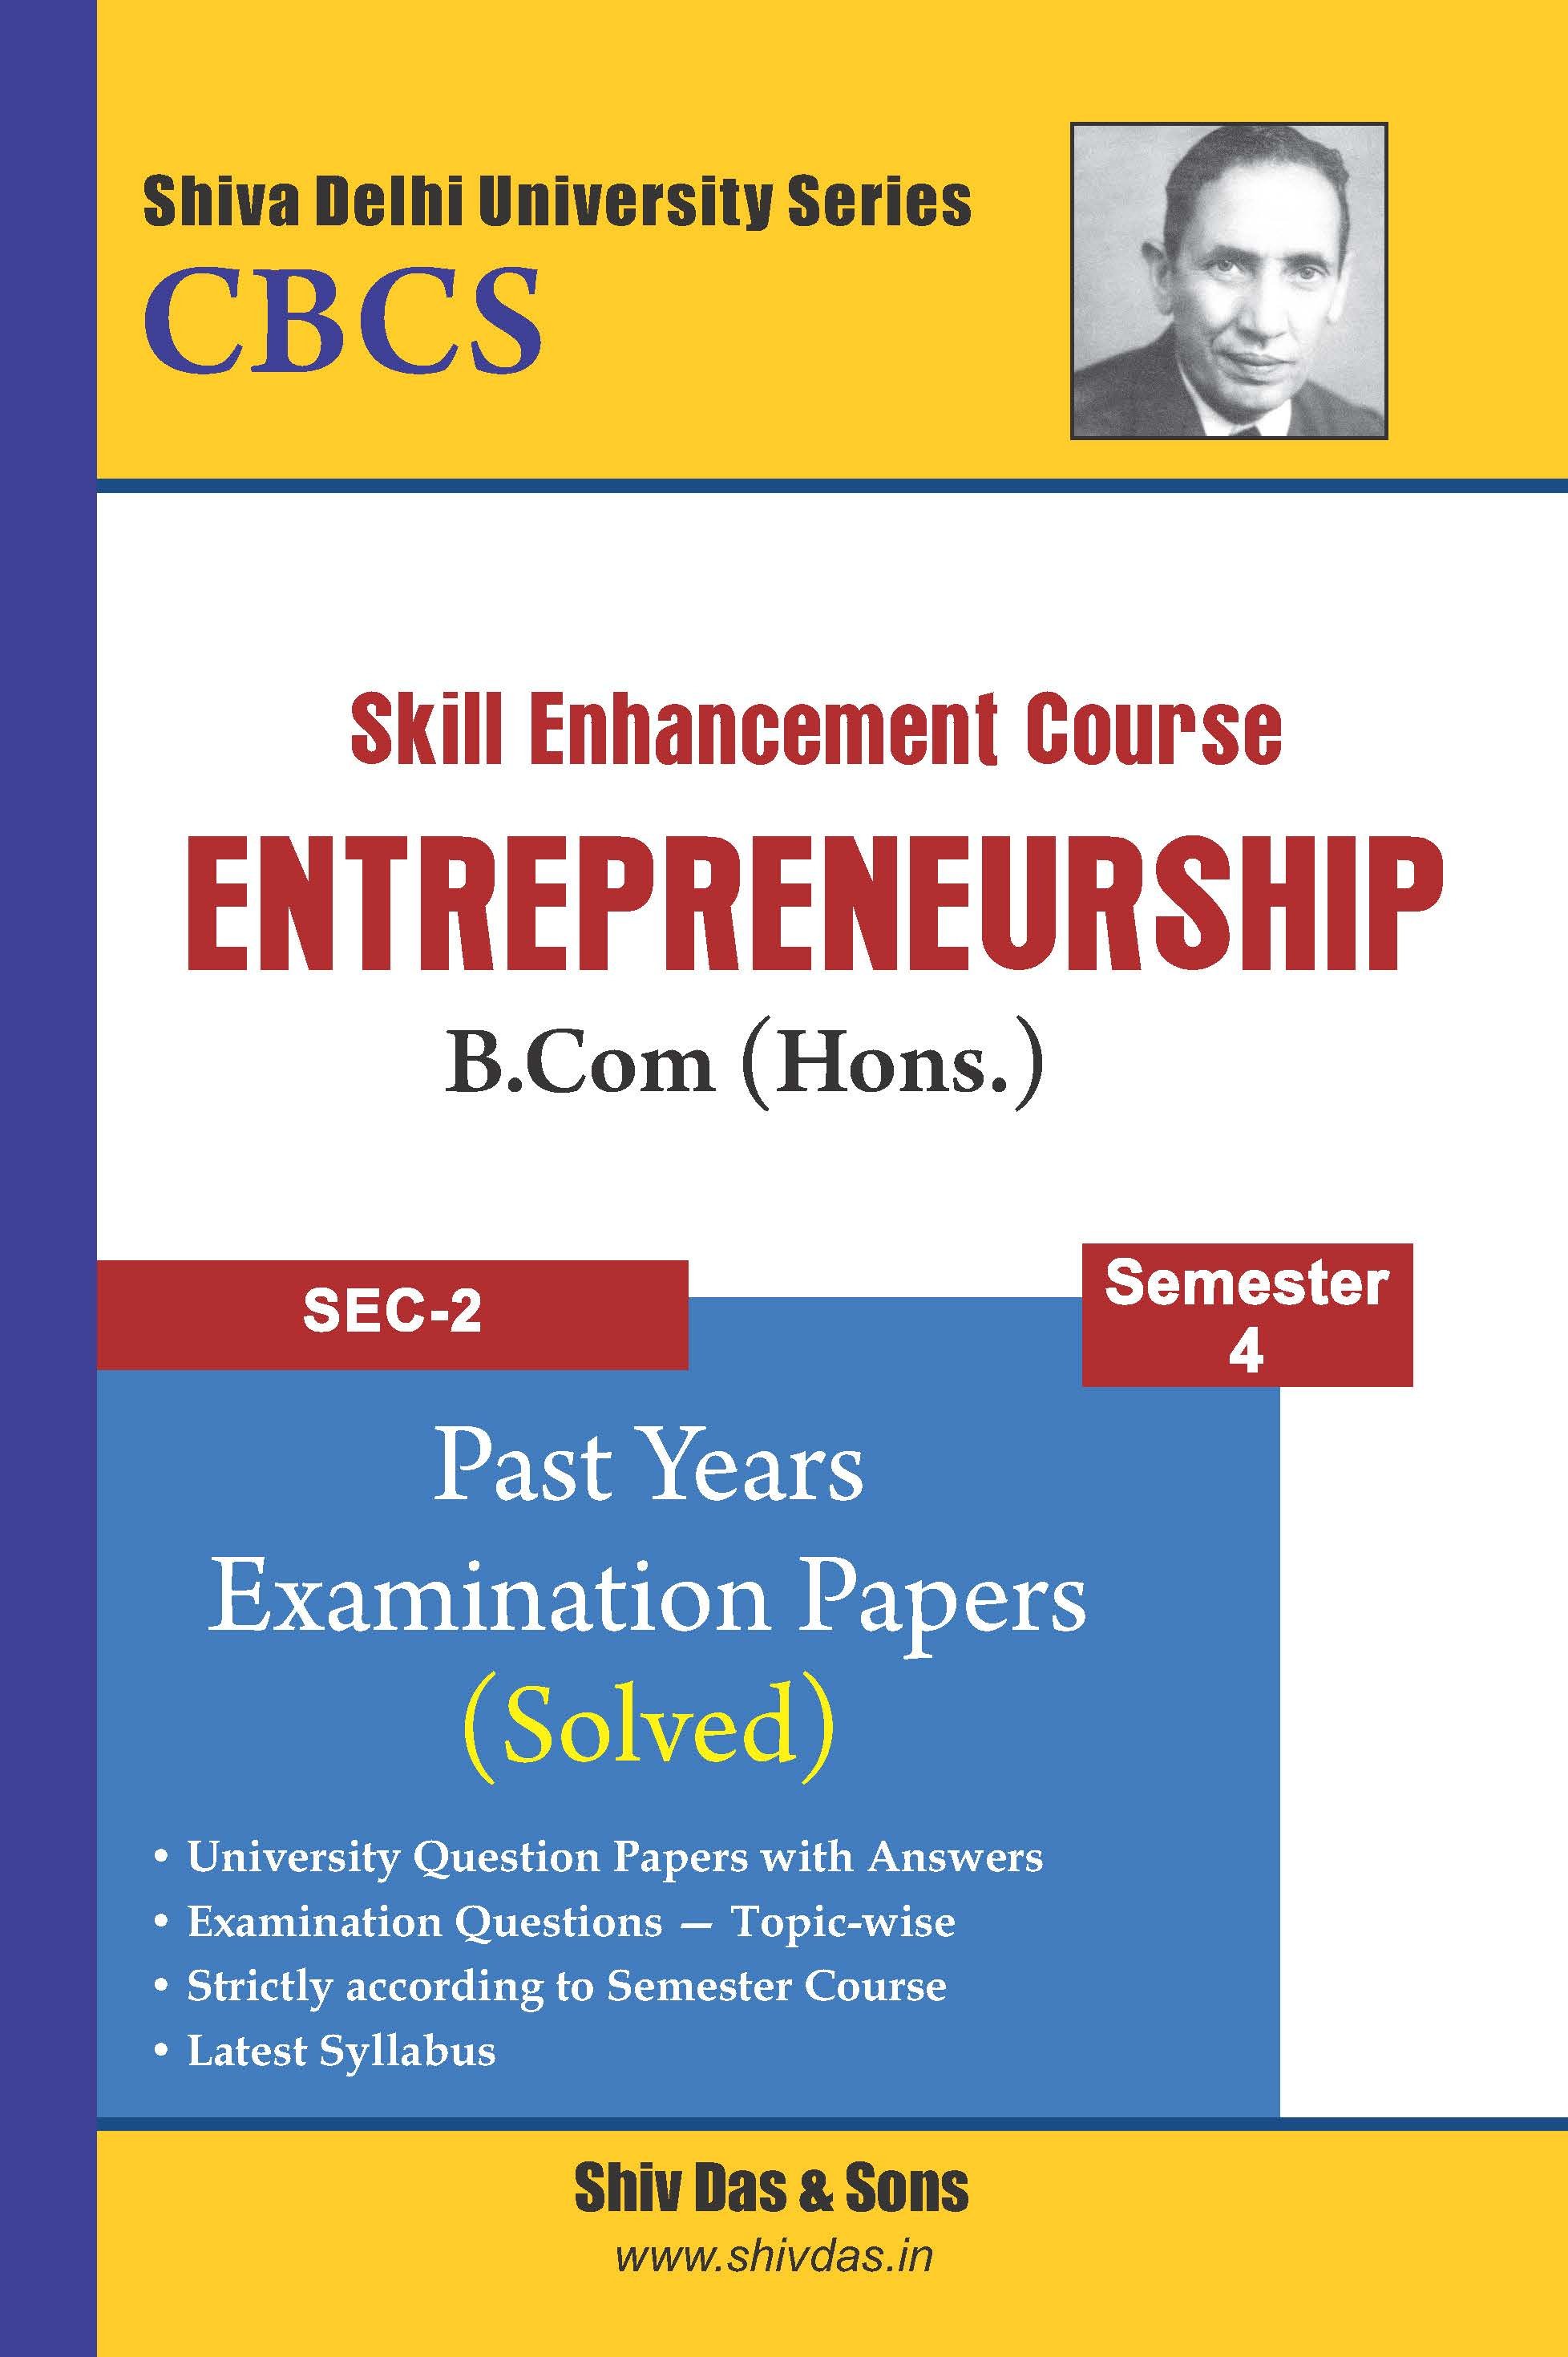 Entrepreneurship for B.Com Hons Semester 4